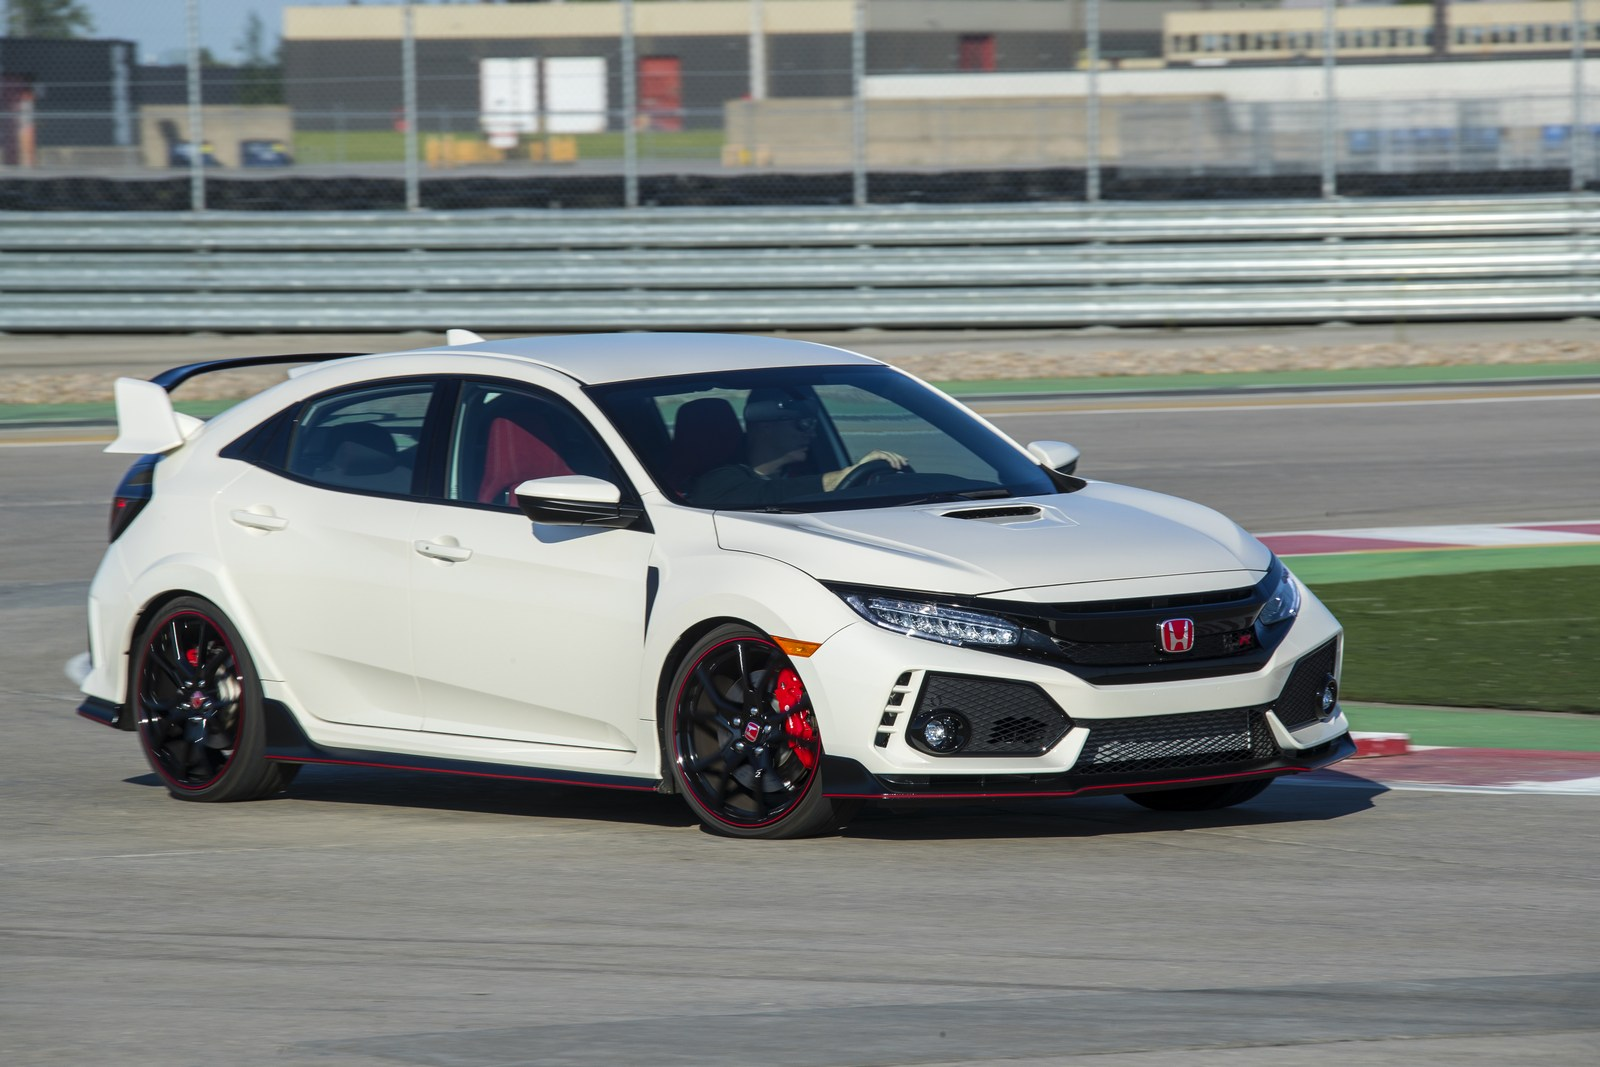 2018 honda civic type r price bumped to 34 100 no entry. Black Bedroom Furniture Sets. Home Design Ideas